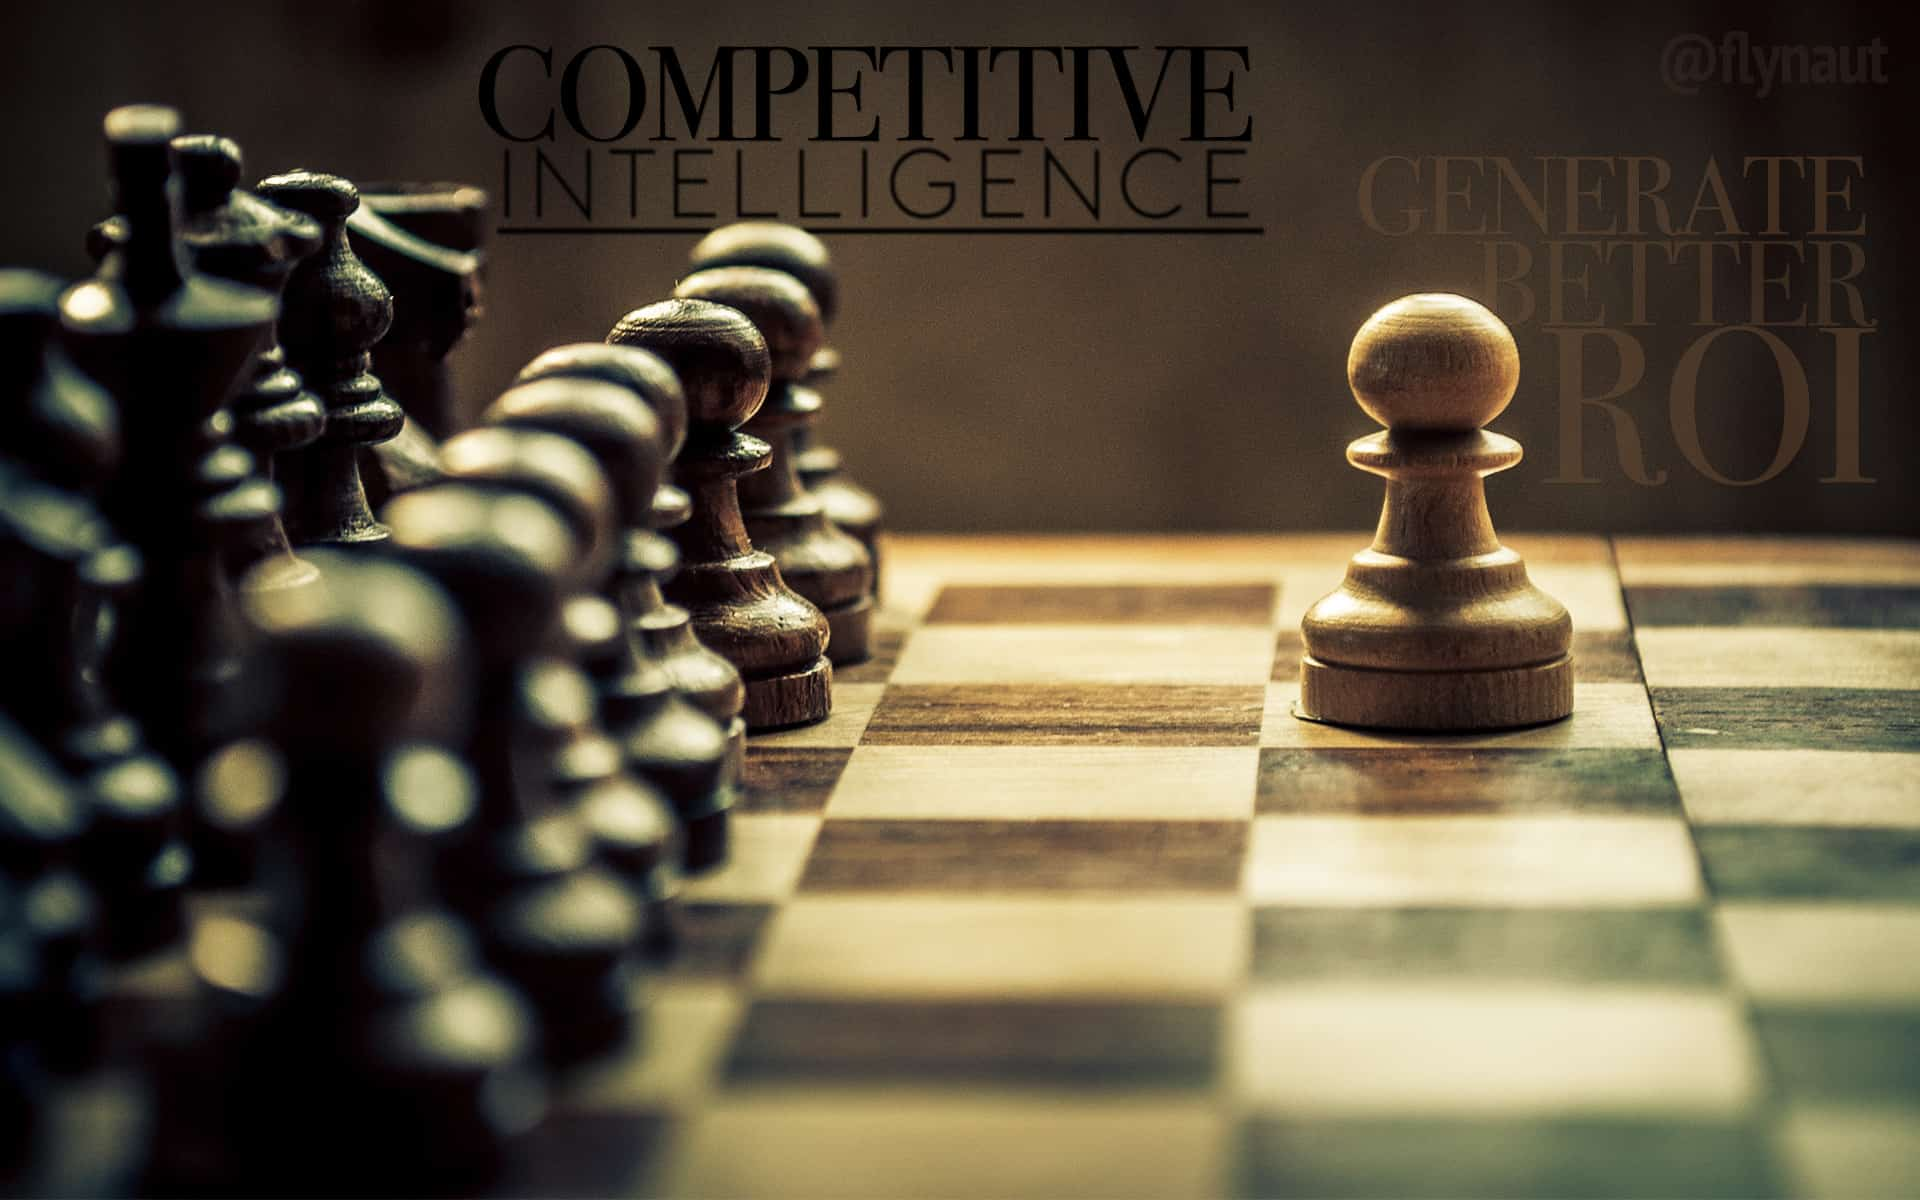 Need your Content Marketing to generate better ROI? Say Hello to Competitive Intelligence